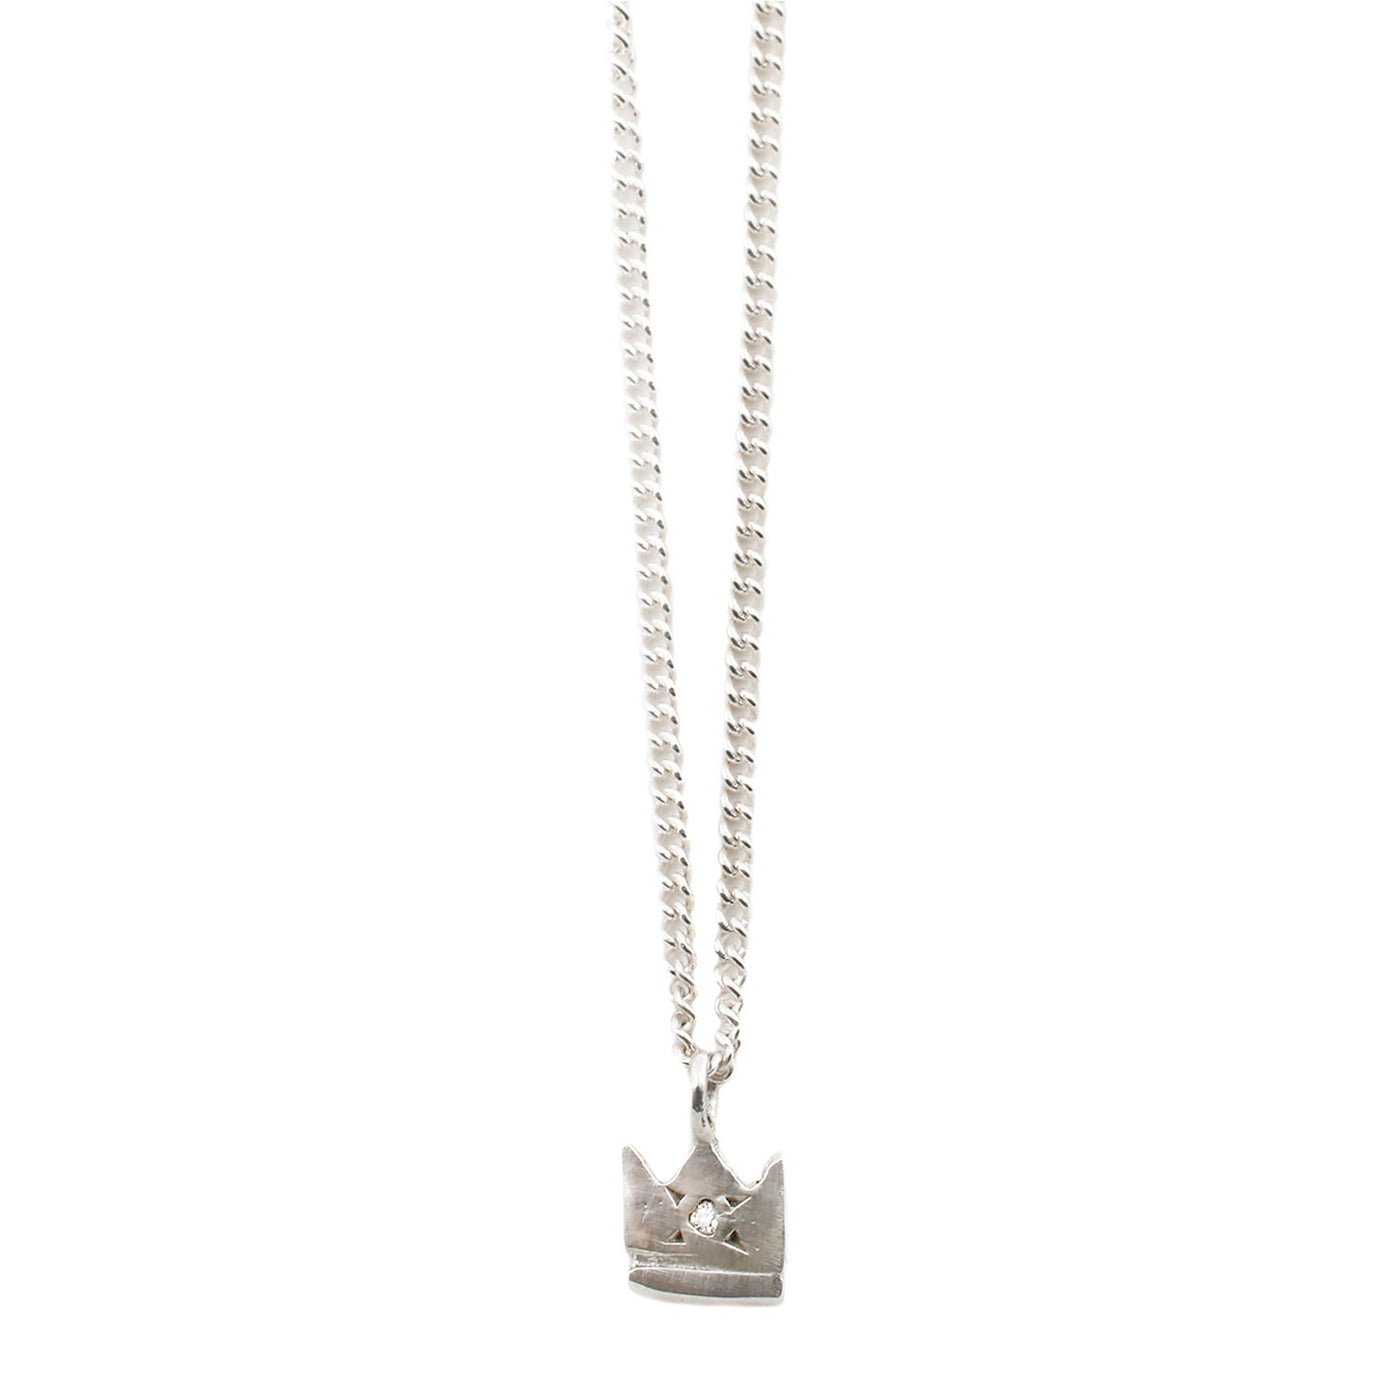 Scosha Silver Crown Pendant Necklace